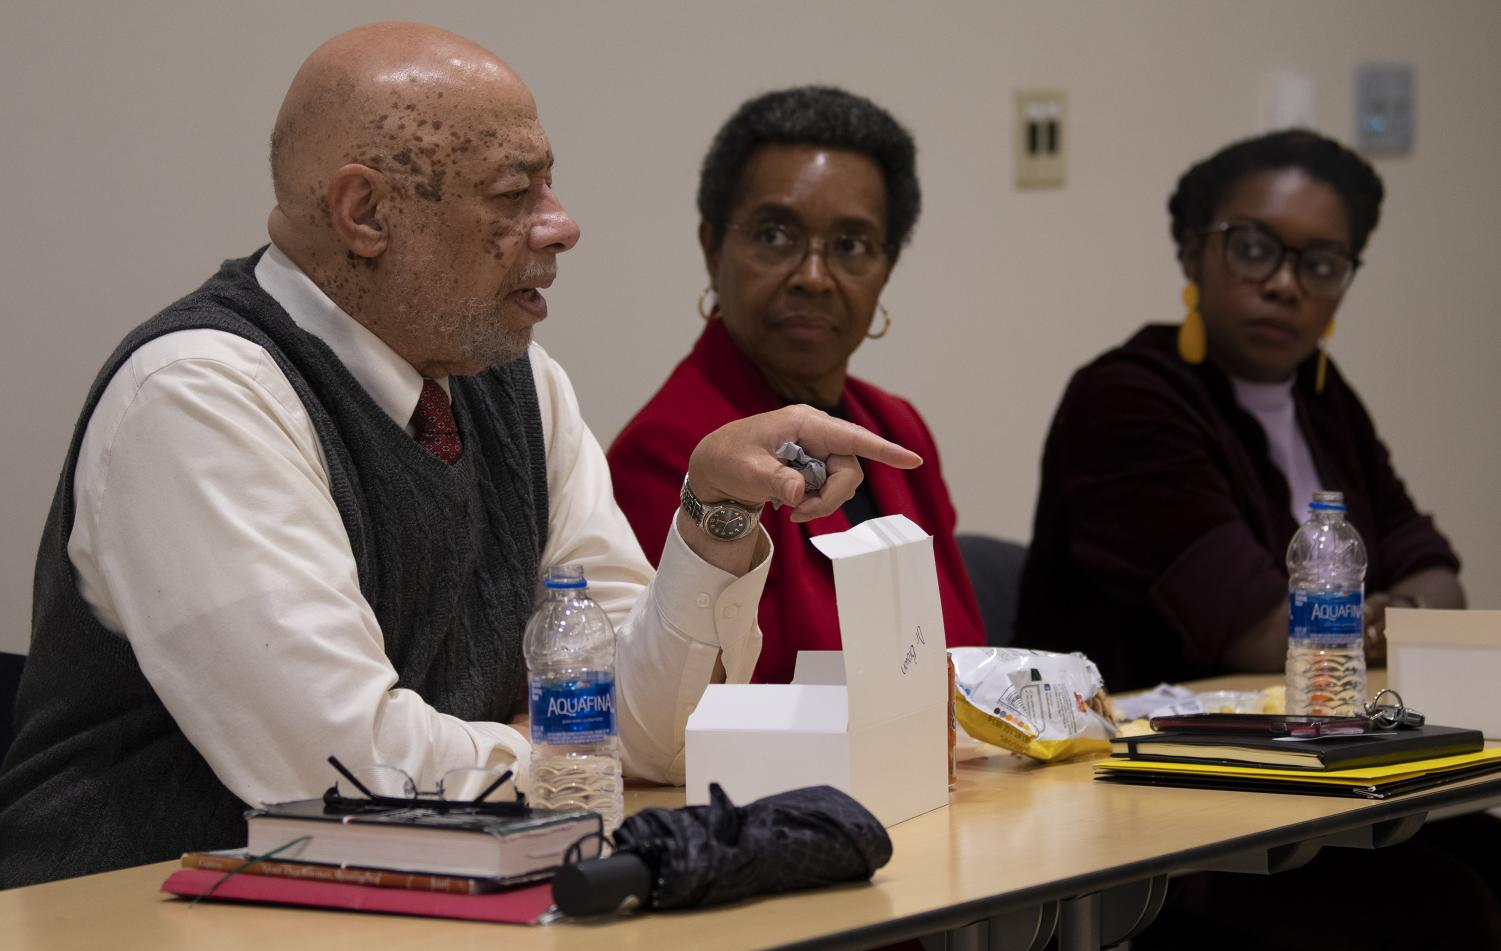 Reverend Joseph A. Brown, speaks about diversity and issues within SIU alongside Carolin Harvey, Seyi Amosu, on Wednesday, Feb. 20, 2019, inside the Student Services Building at SIU.